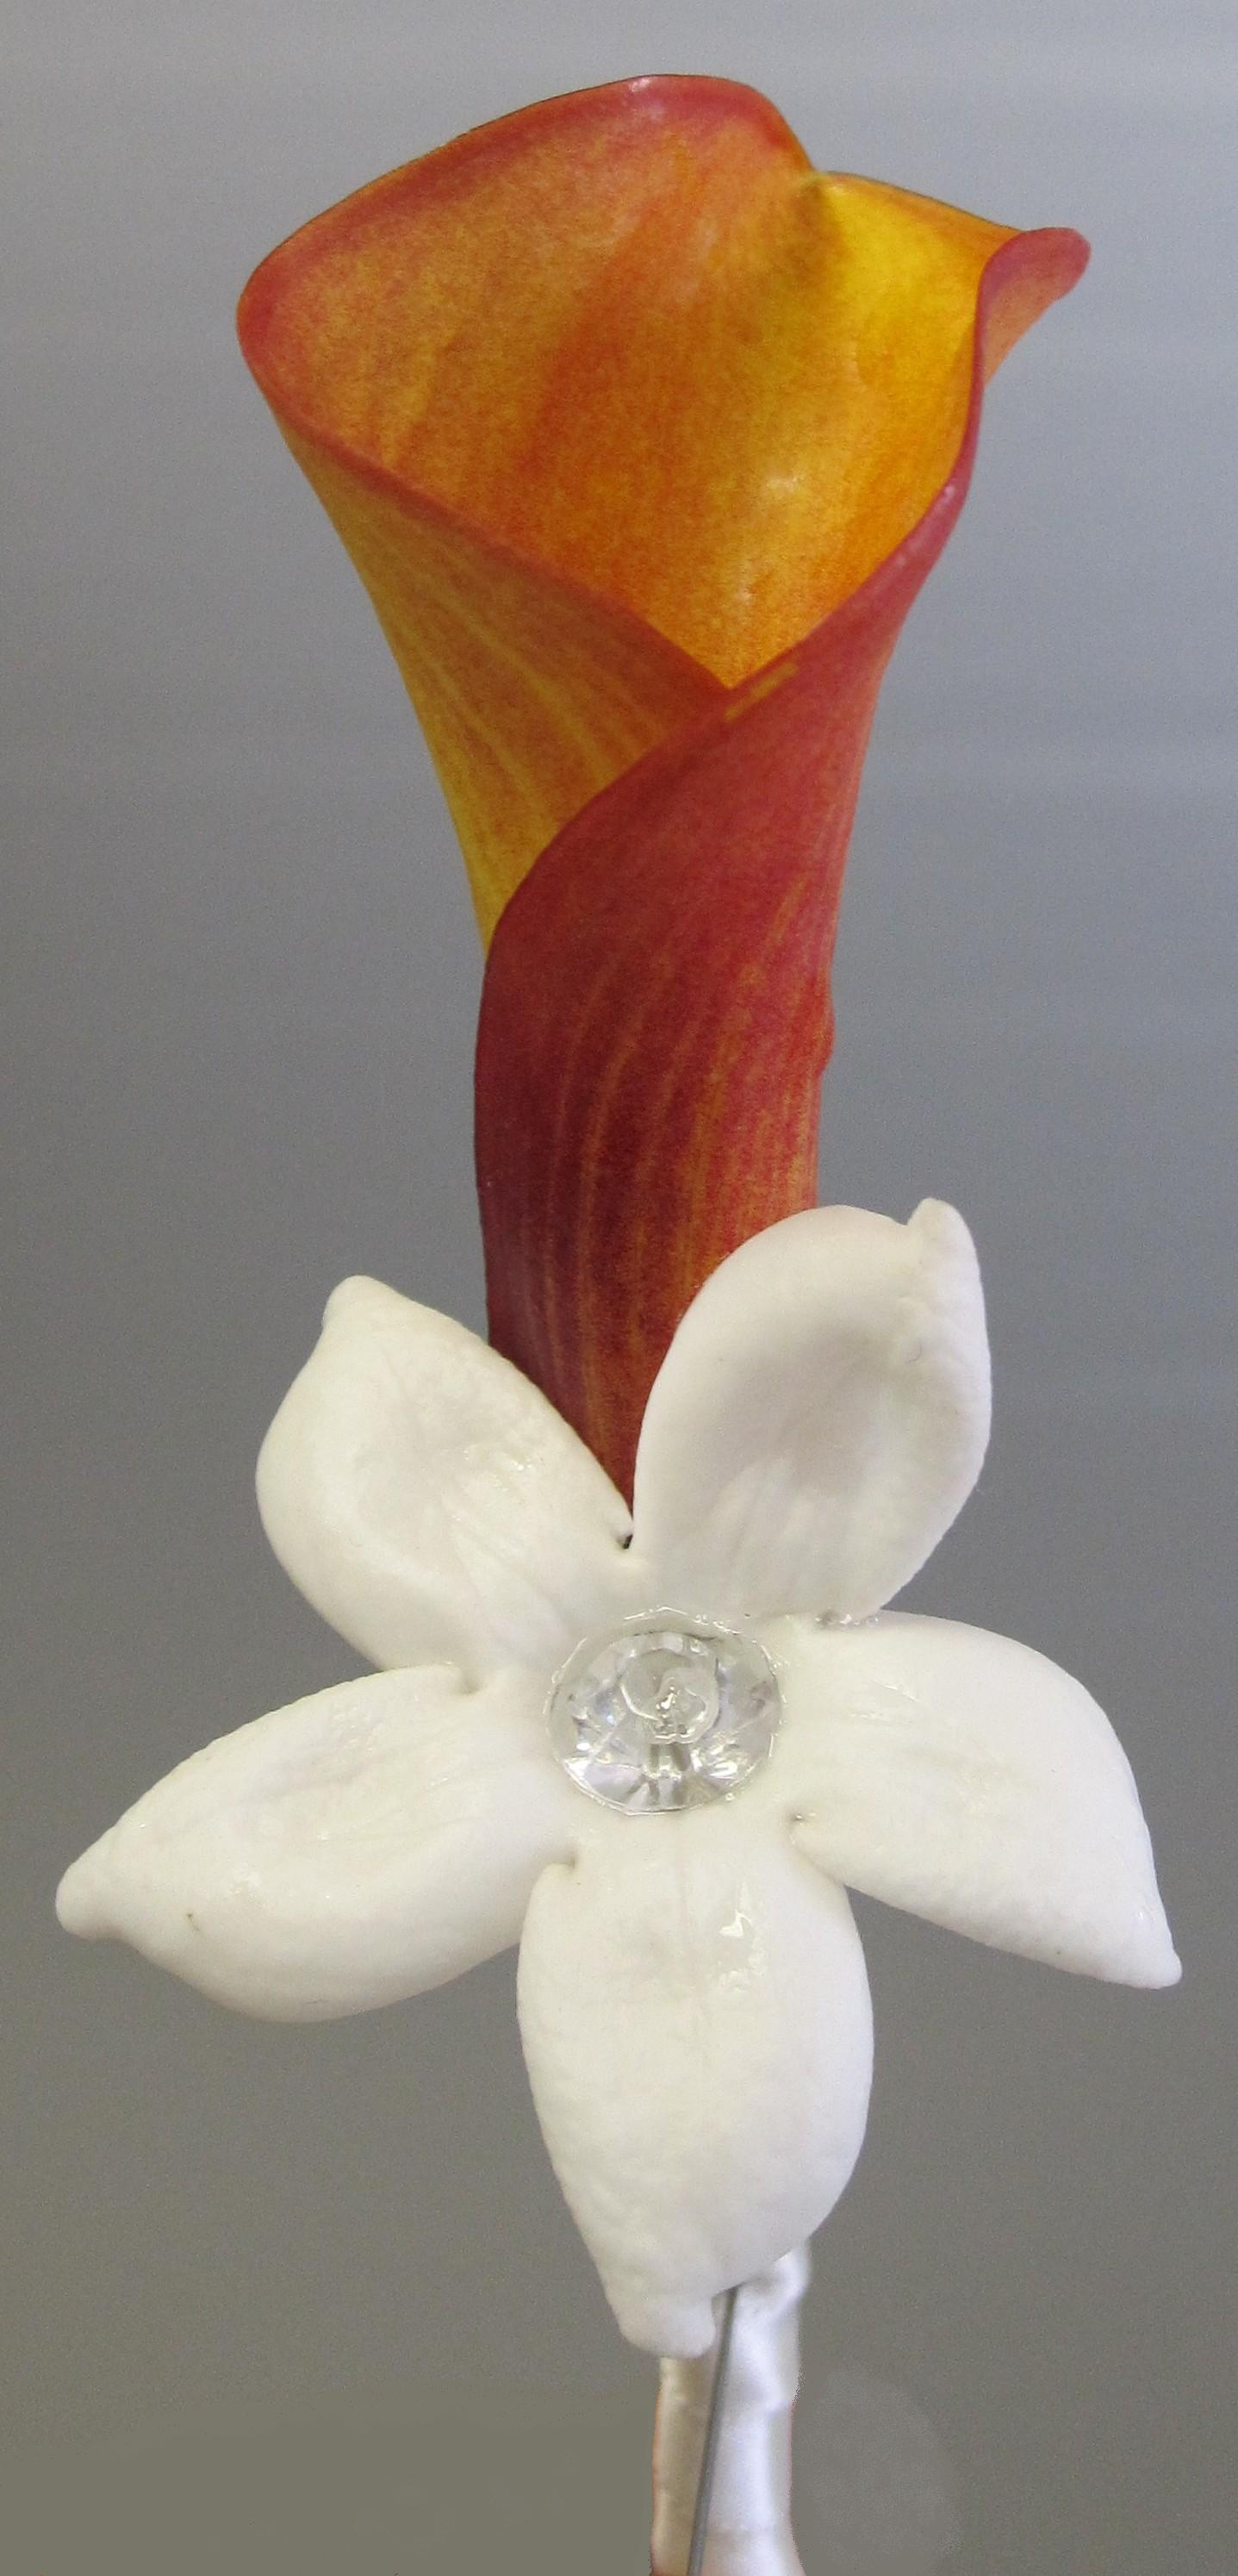 Flowers & Decor, white, orange, Boutonnieres, Flowers, Groom, Boutonniere, Ninfas flowers gifts